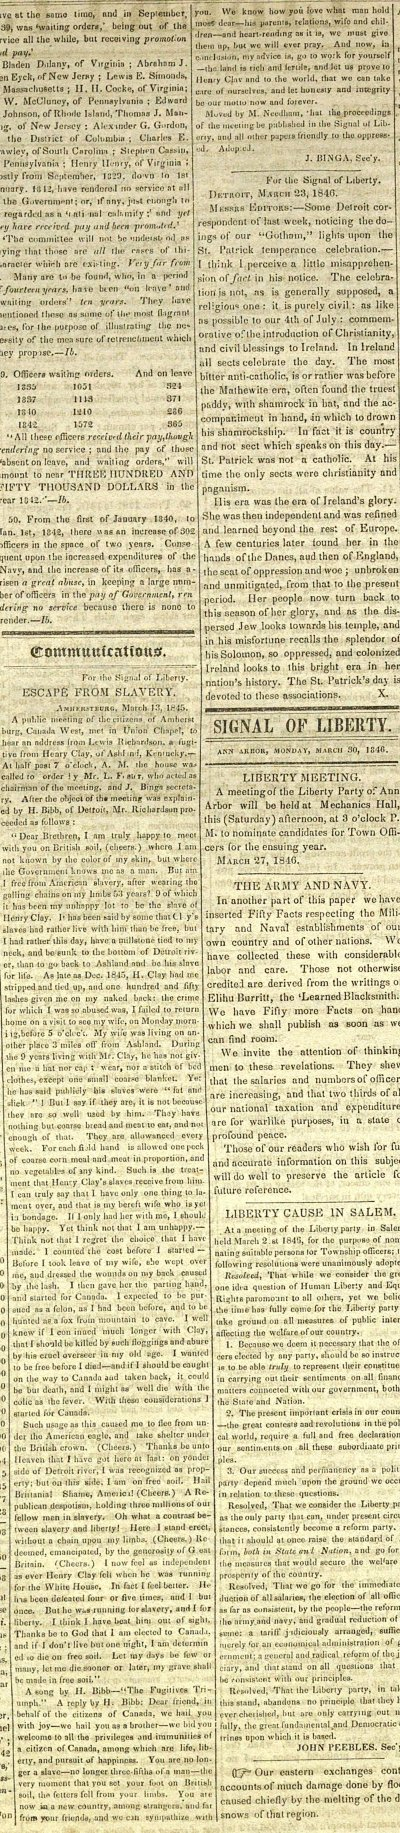 Communications: For The Signal Of Liberty: Escape From Slave... image